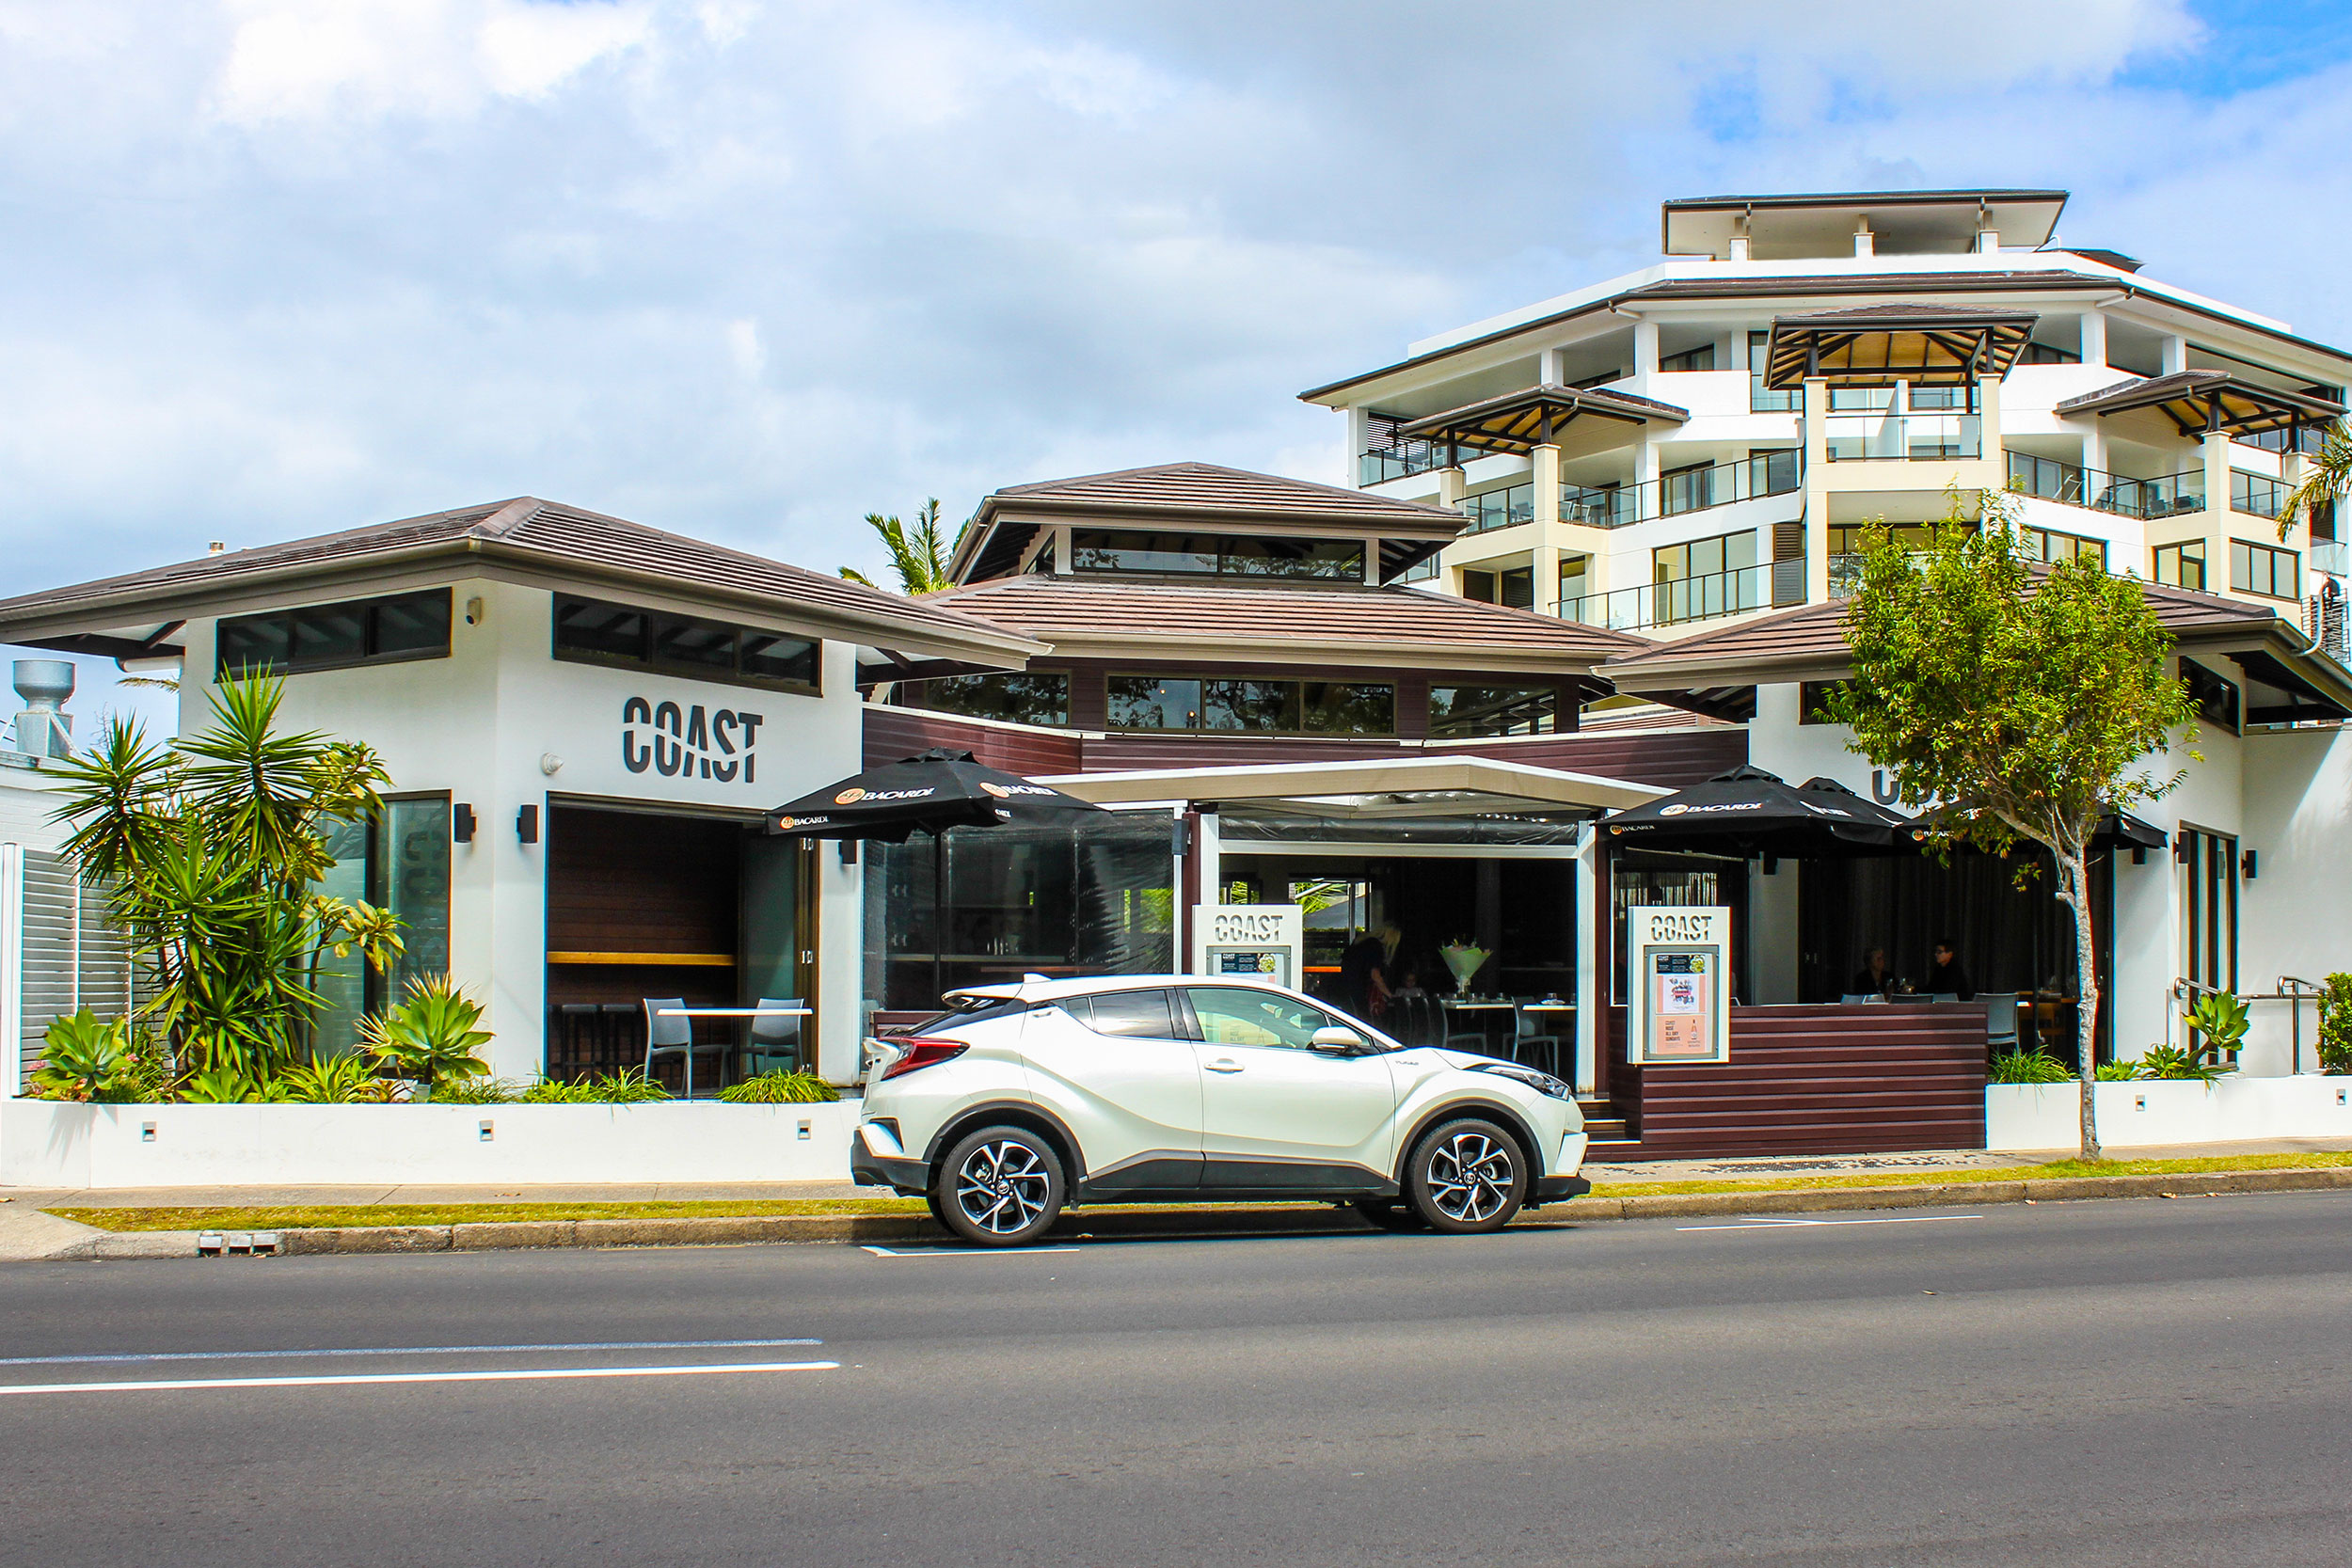 Name : COAST Restaurant & Bar - Hervey Bay